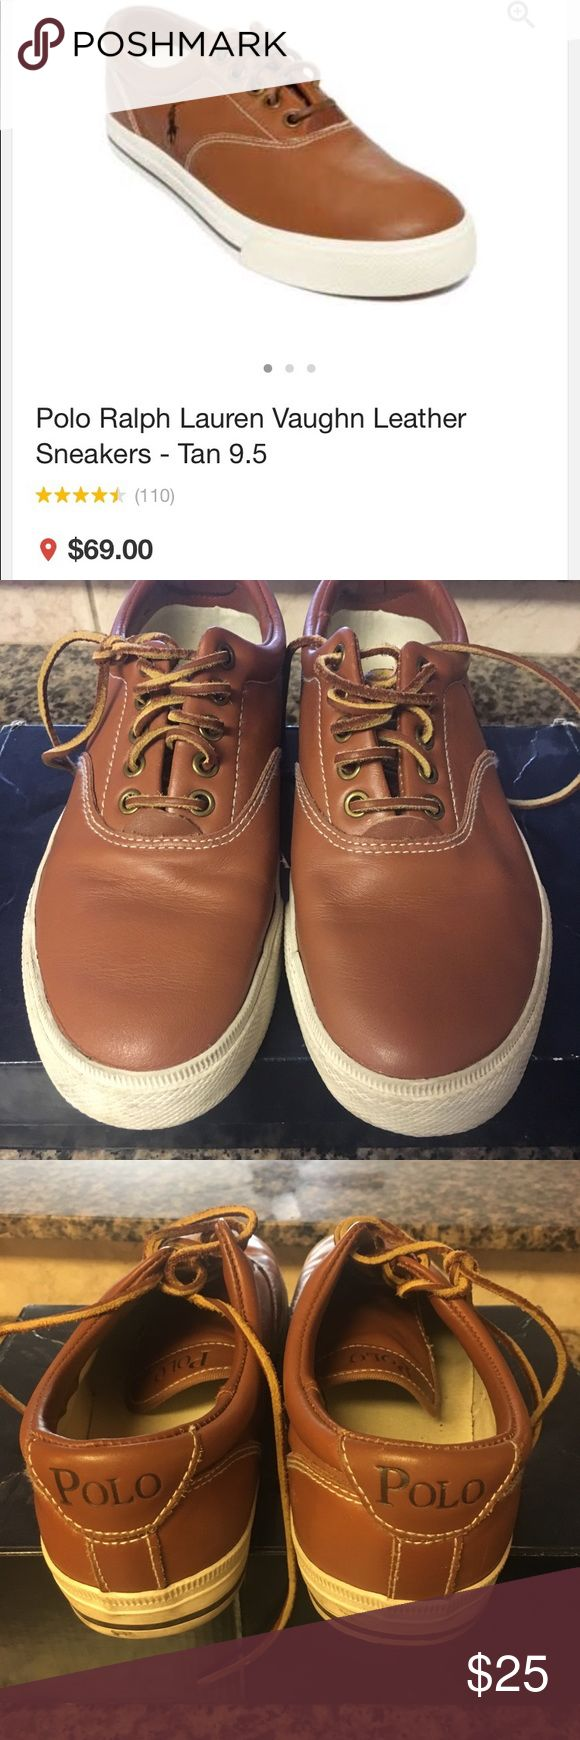 Polo Ralph Lauren Vaughn Leather Casual Sneakers Polo Ralph Lauren Vaughn Leather Casual Sneakers in excellent condition Polo by Ralph Lauren Shoes Sneakers